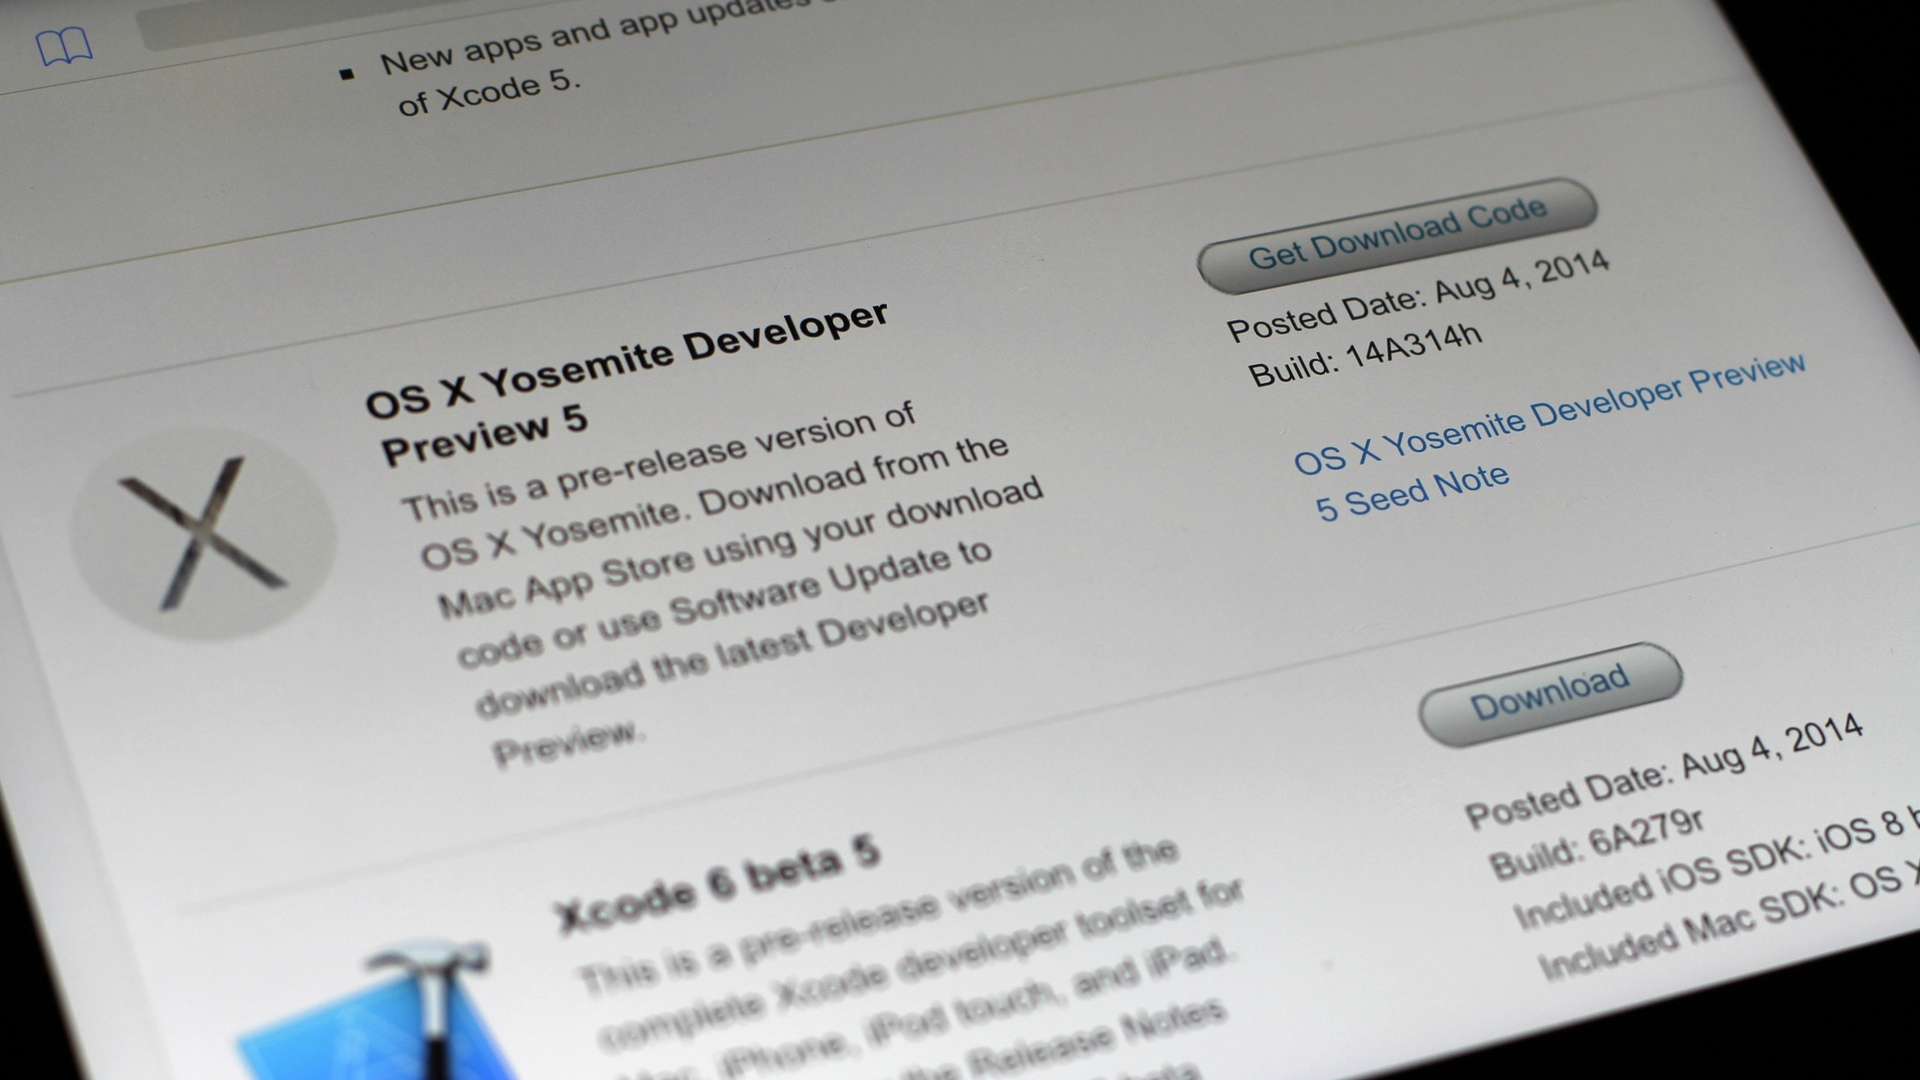 OS X Yosemite Developer Preview 5 build 14A314h